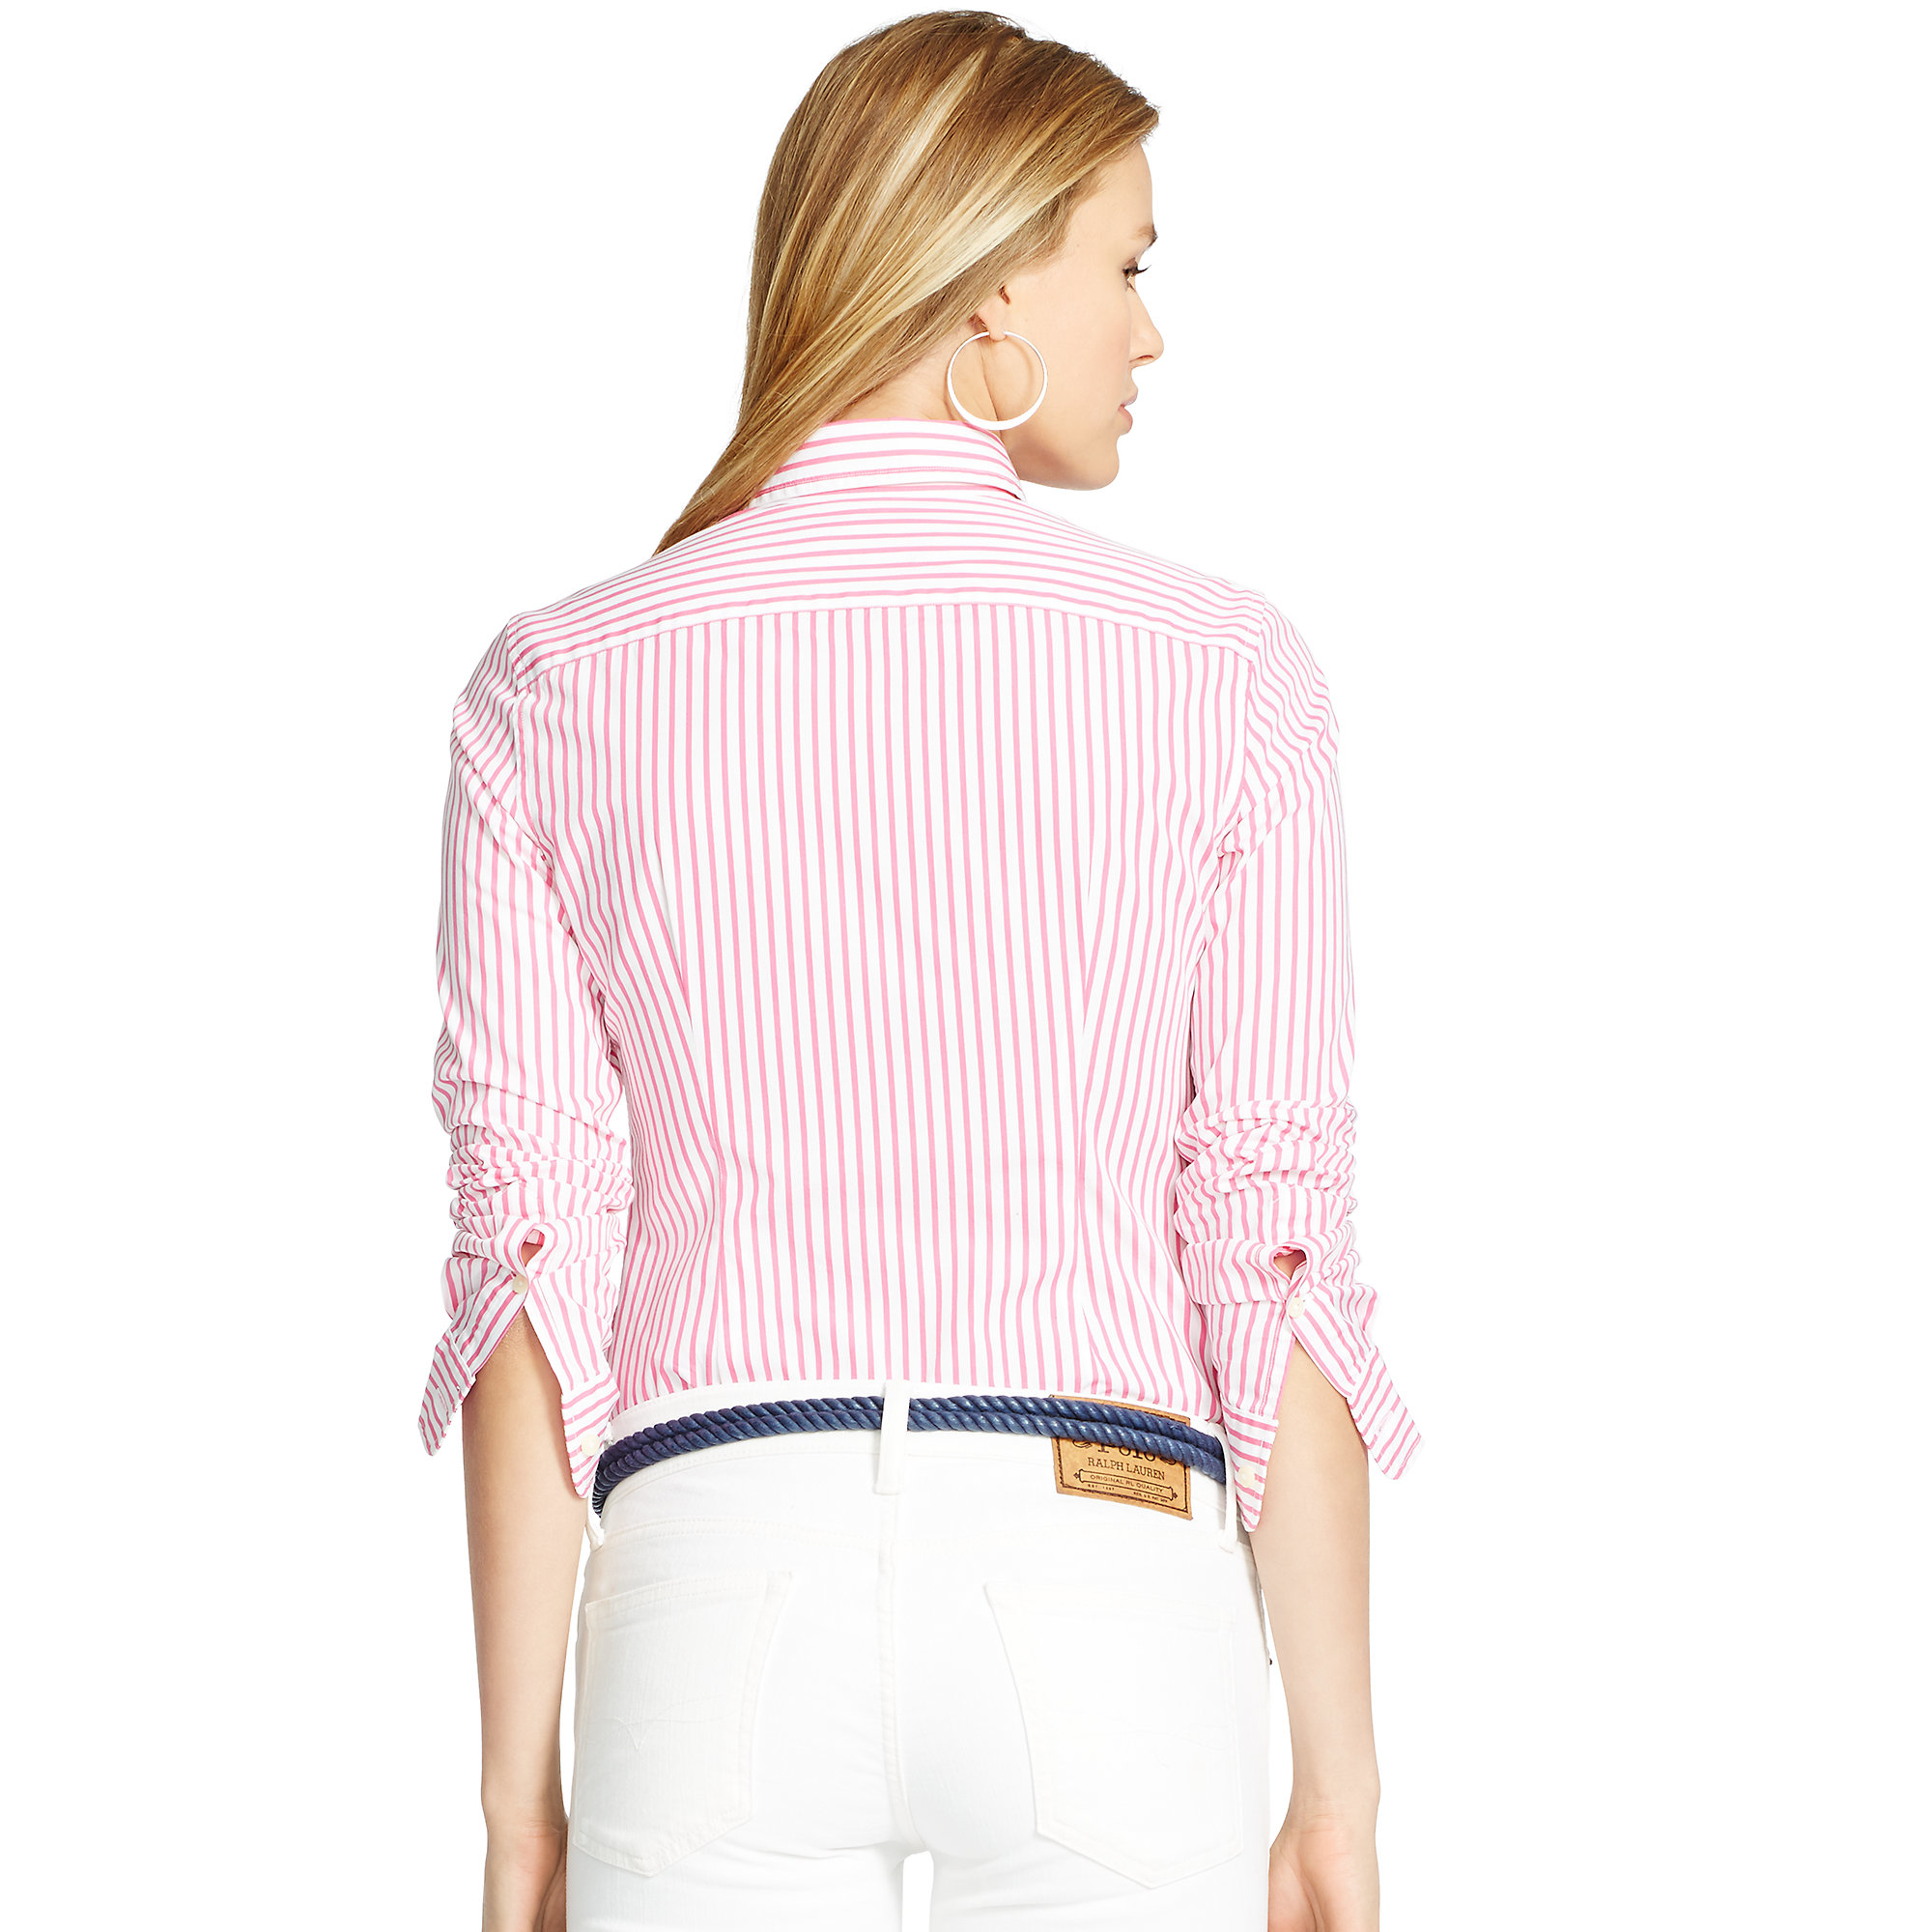 c581c850a Polo Ralph Lauren Custom-fit Striped Shirt in Pink - Lyst